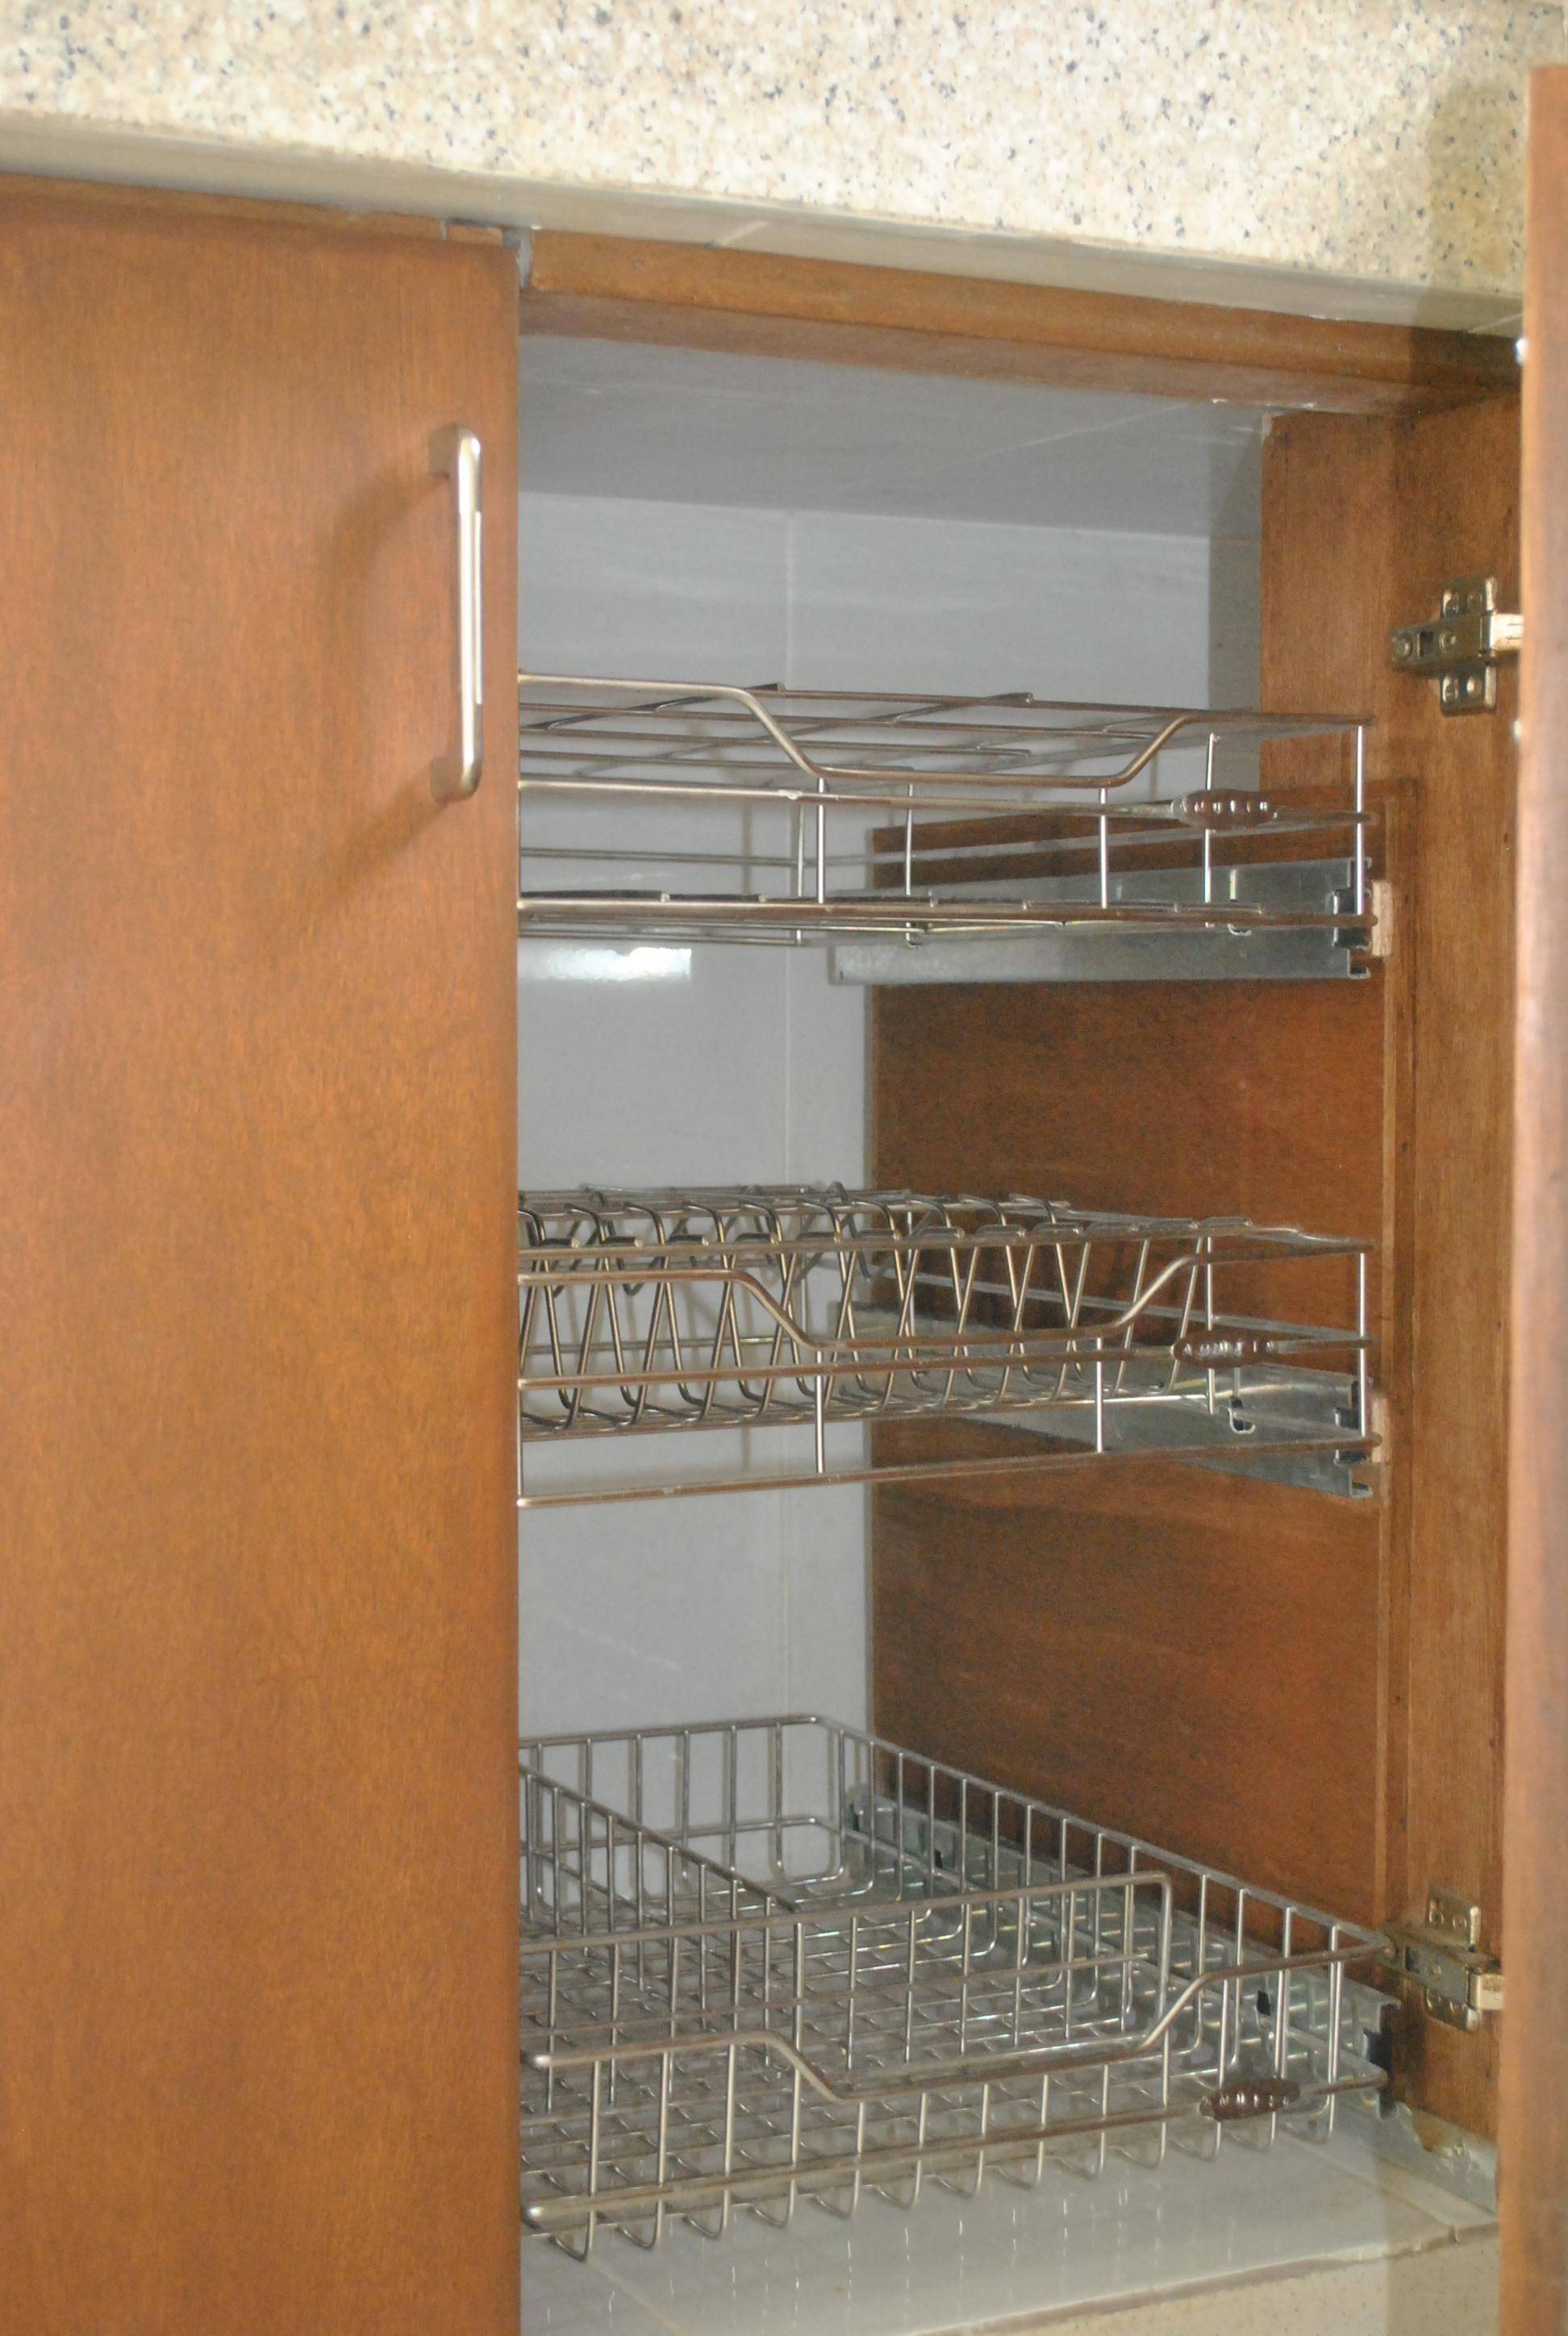 kitchen racks gharexpert